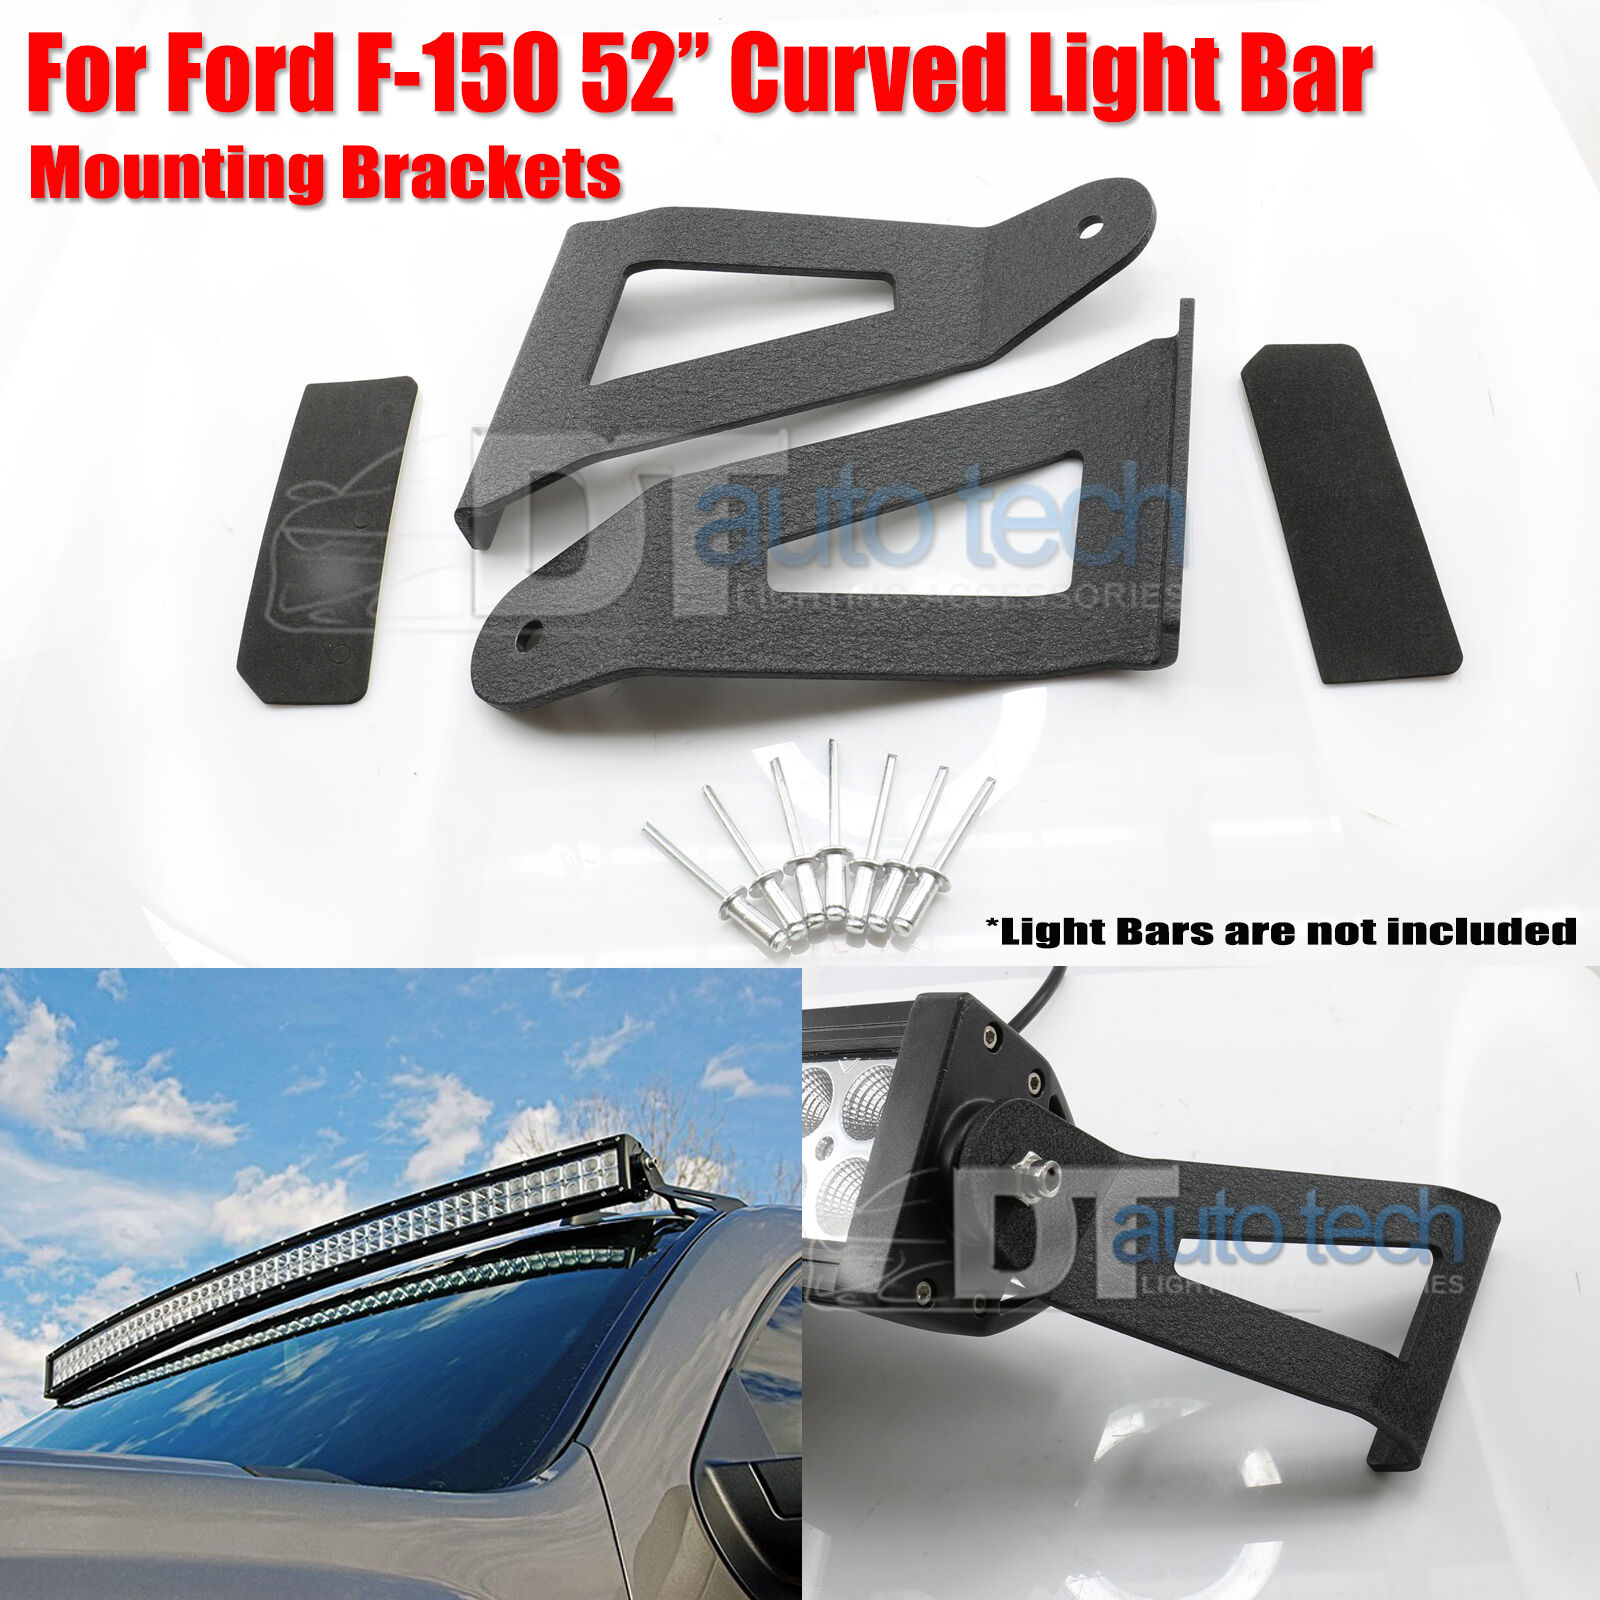 Details About 04 14 Ford F150 52 Inch Curved Led Light Bar Upper Windshield Mounting Brackets